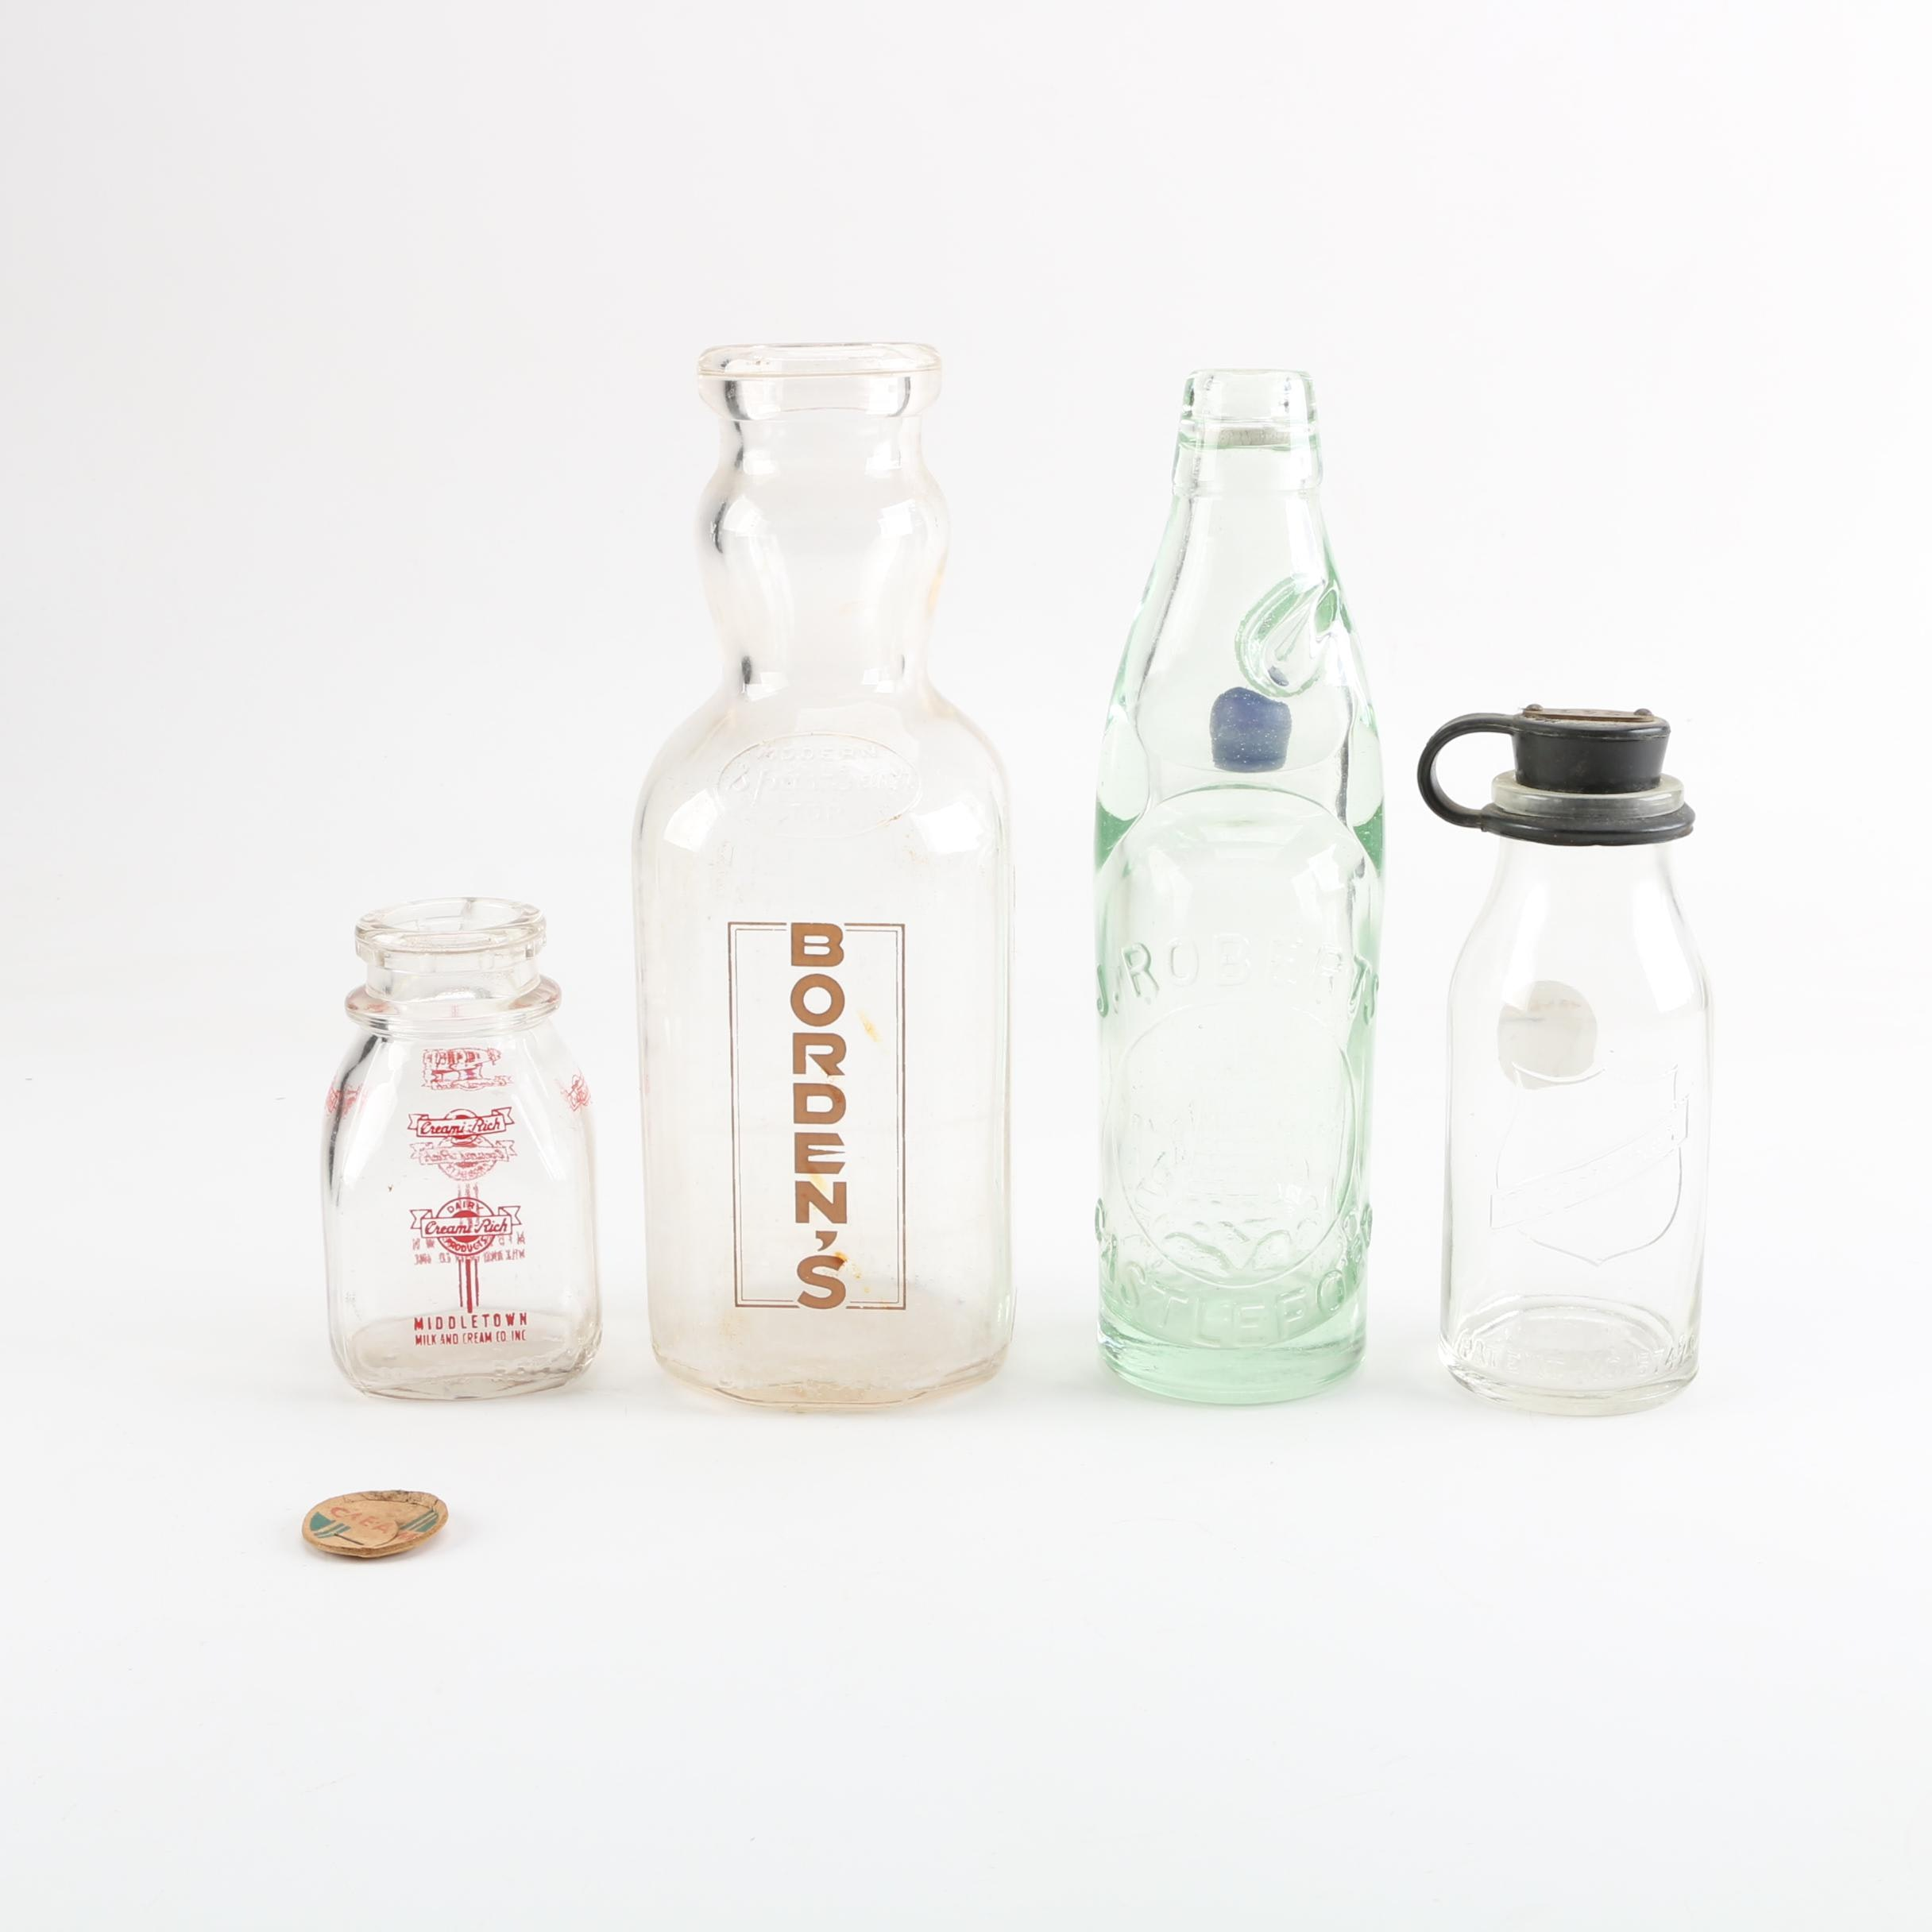 Codd Neck J Roberts of Castleford Soda Bottle and Glass Milk Bottles